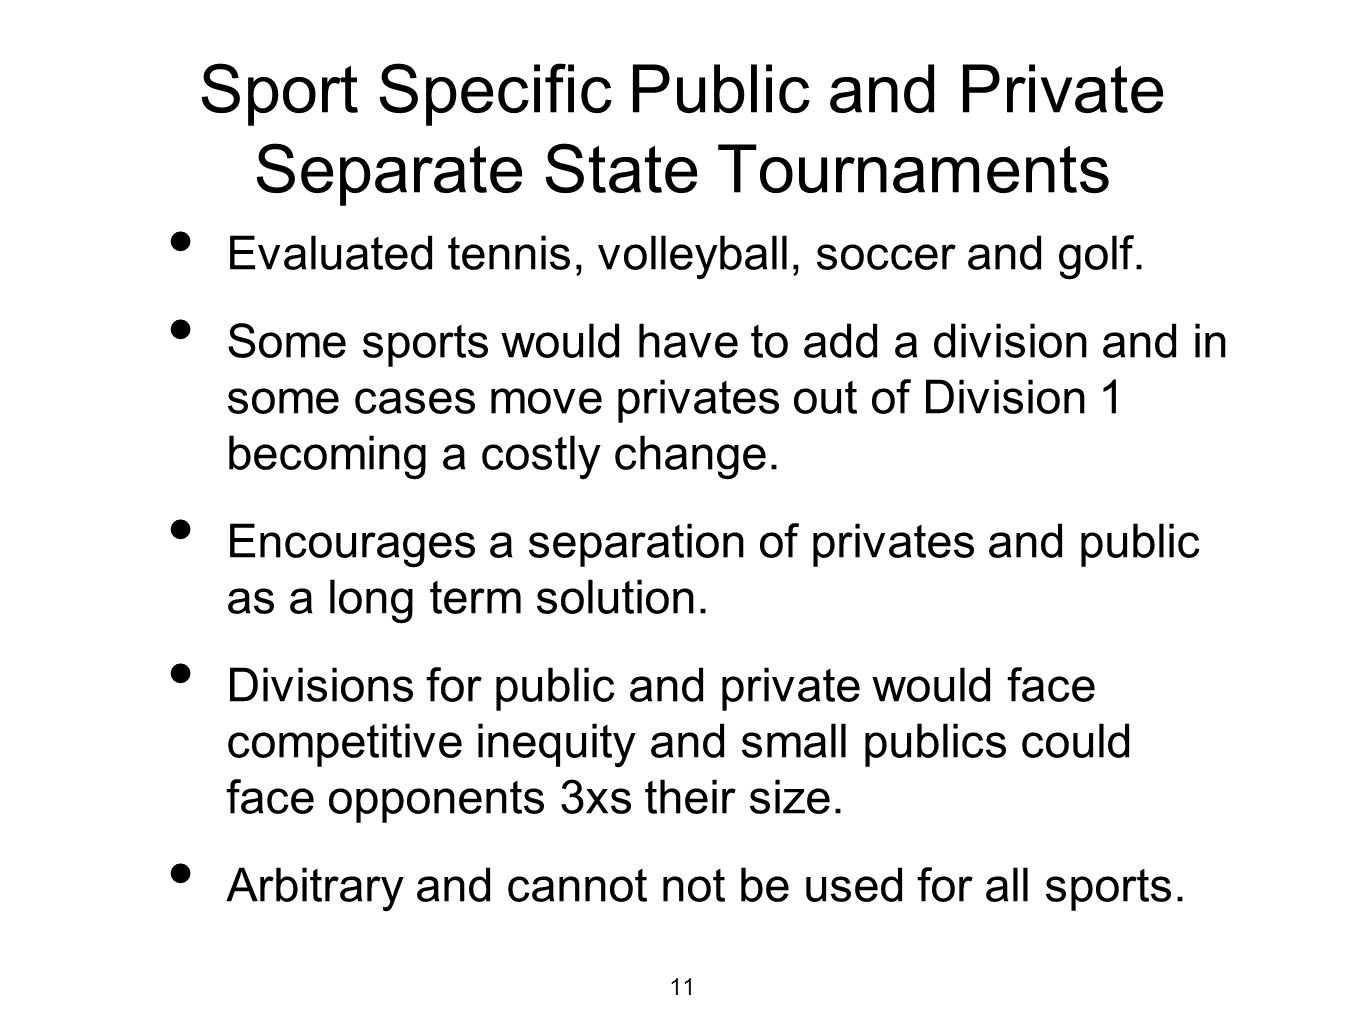 Sport Specific Public and Private Separate State Tournaments Evaluated tennis, volleyball, soccer and golf.